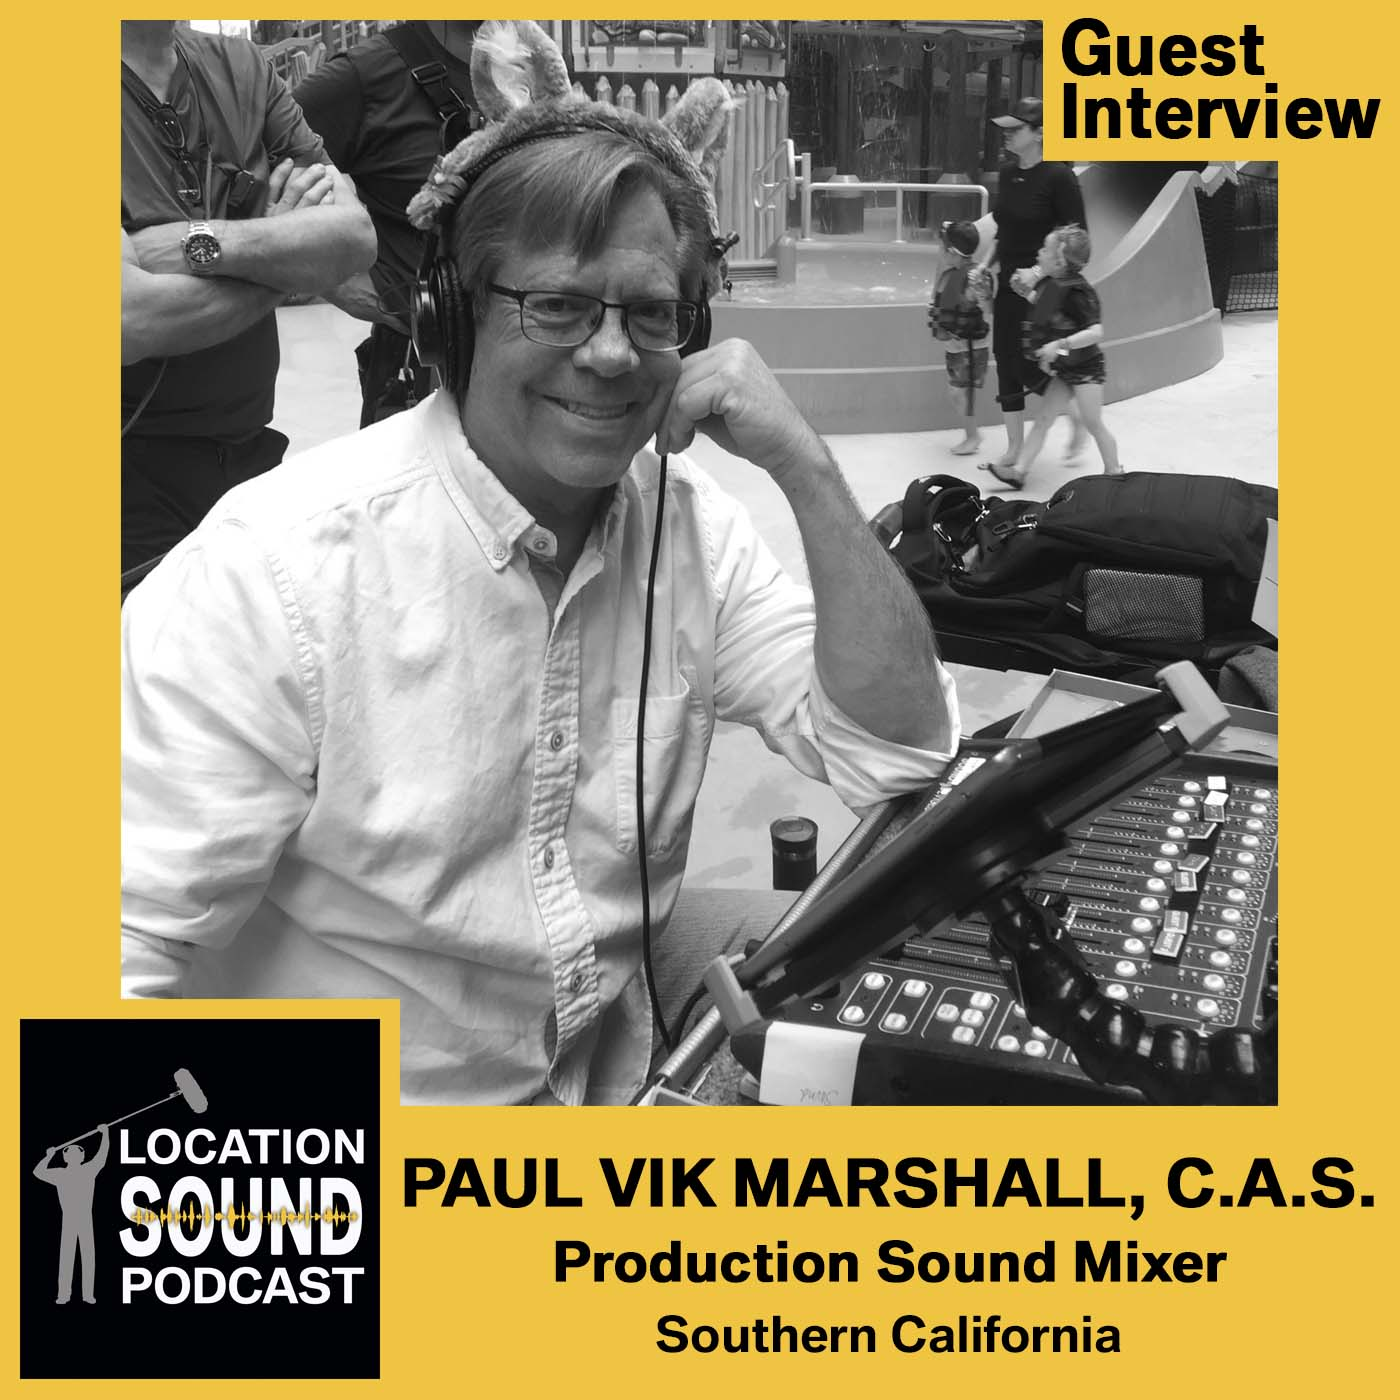 063 Paul Vik Marshall, C.A.S. - Production Sound Mixer based out of Southern California